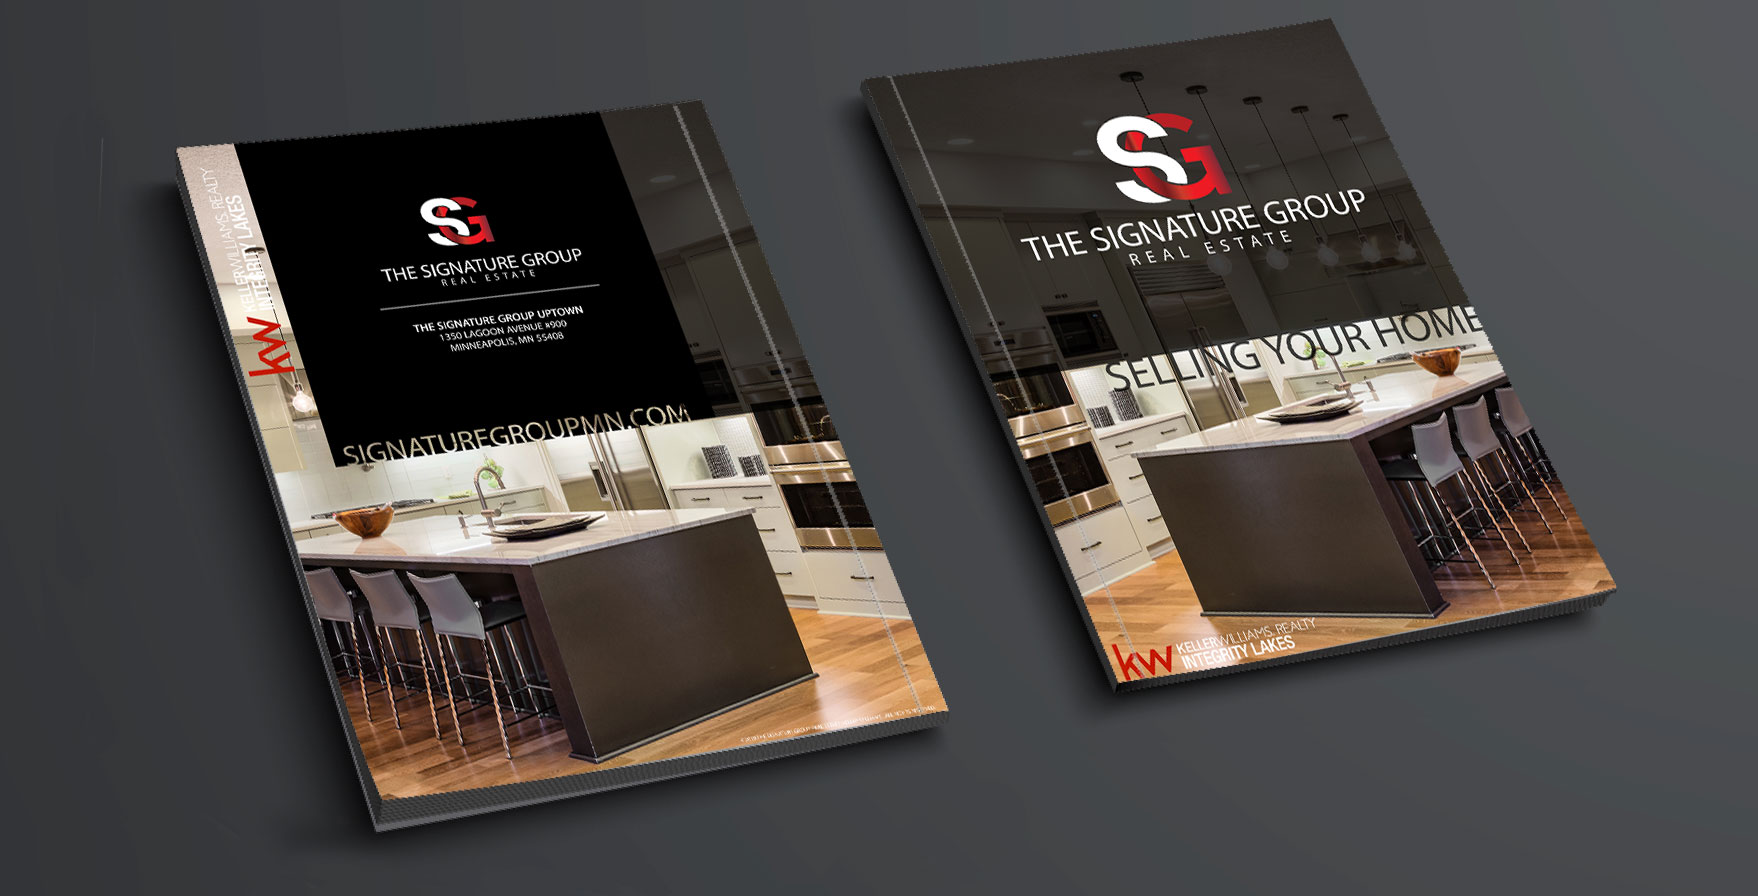 Real Estate Listing Presentation Cover design for the Signature Group of Keller Williams